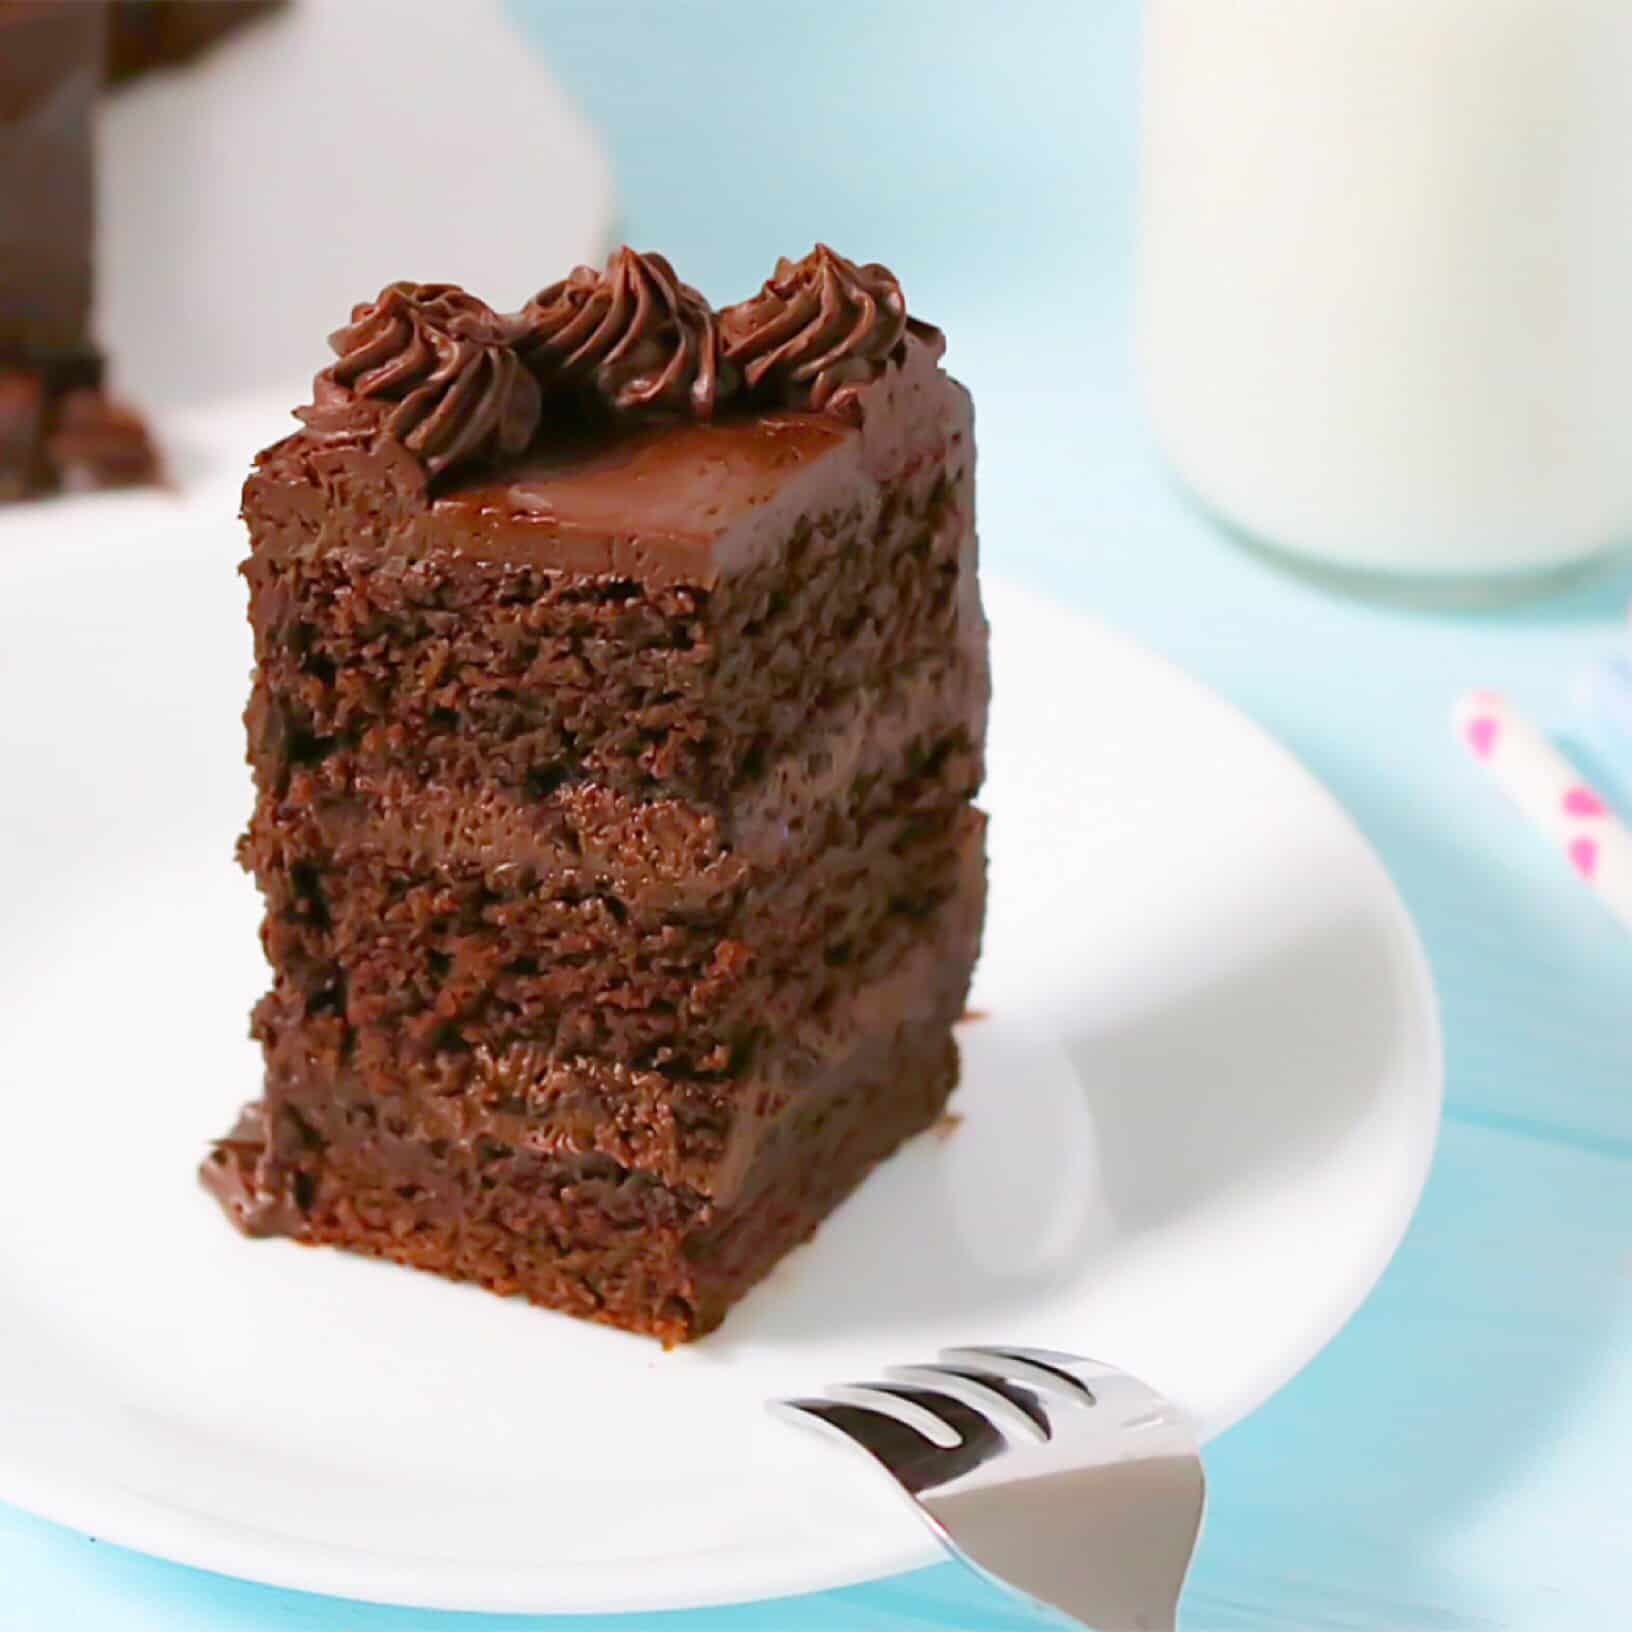 Order a cake bliss chocolate cakes - Rich Moist Devil S Food Cake Layers Dressed In Heavenly Chocolate Frosting I Guarantee This Cake Won T Make It Past Dessert They Ll Be No